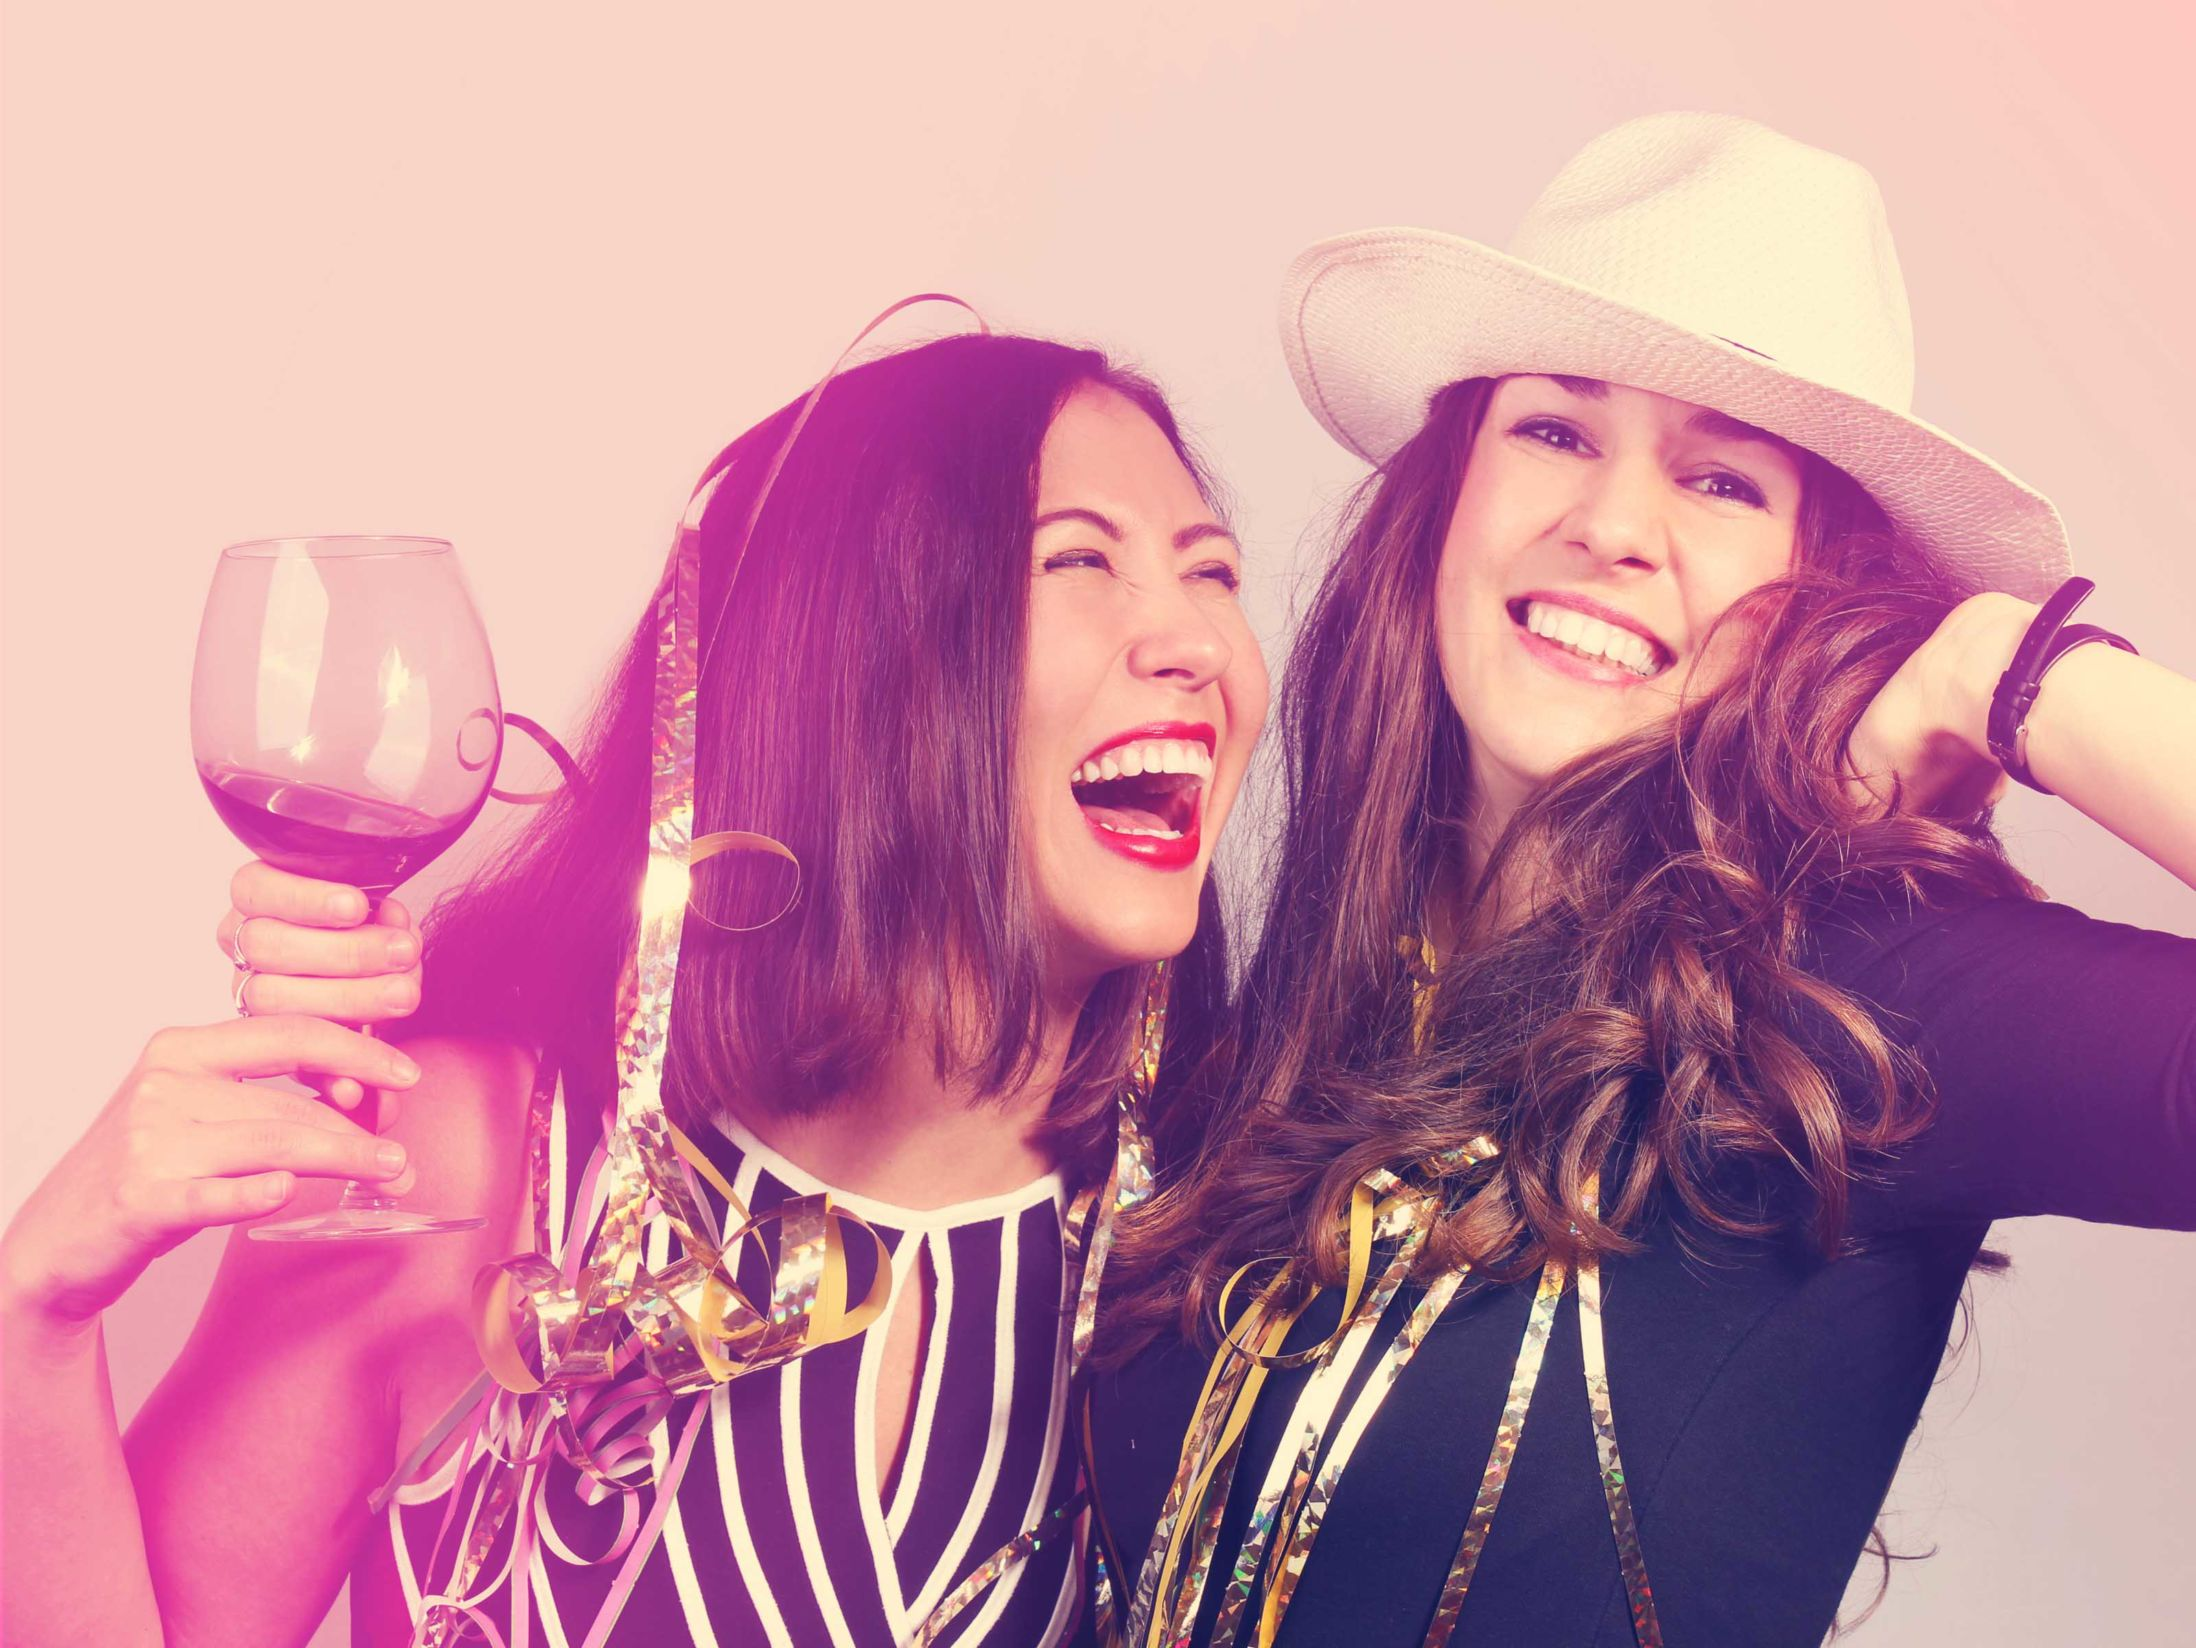 Hen Do Packages | Are They Worth The Money? - Top 5 Hen Party Packages